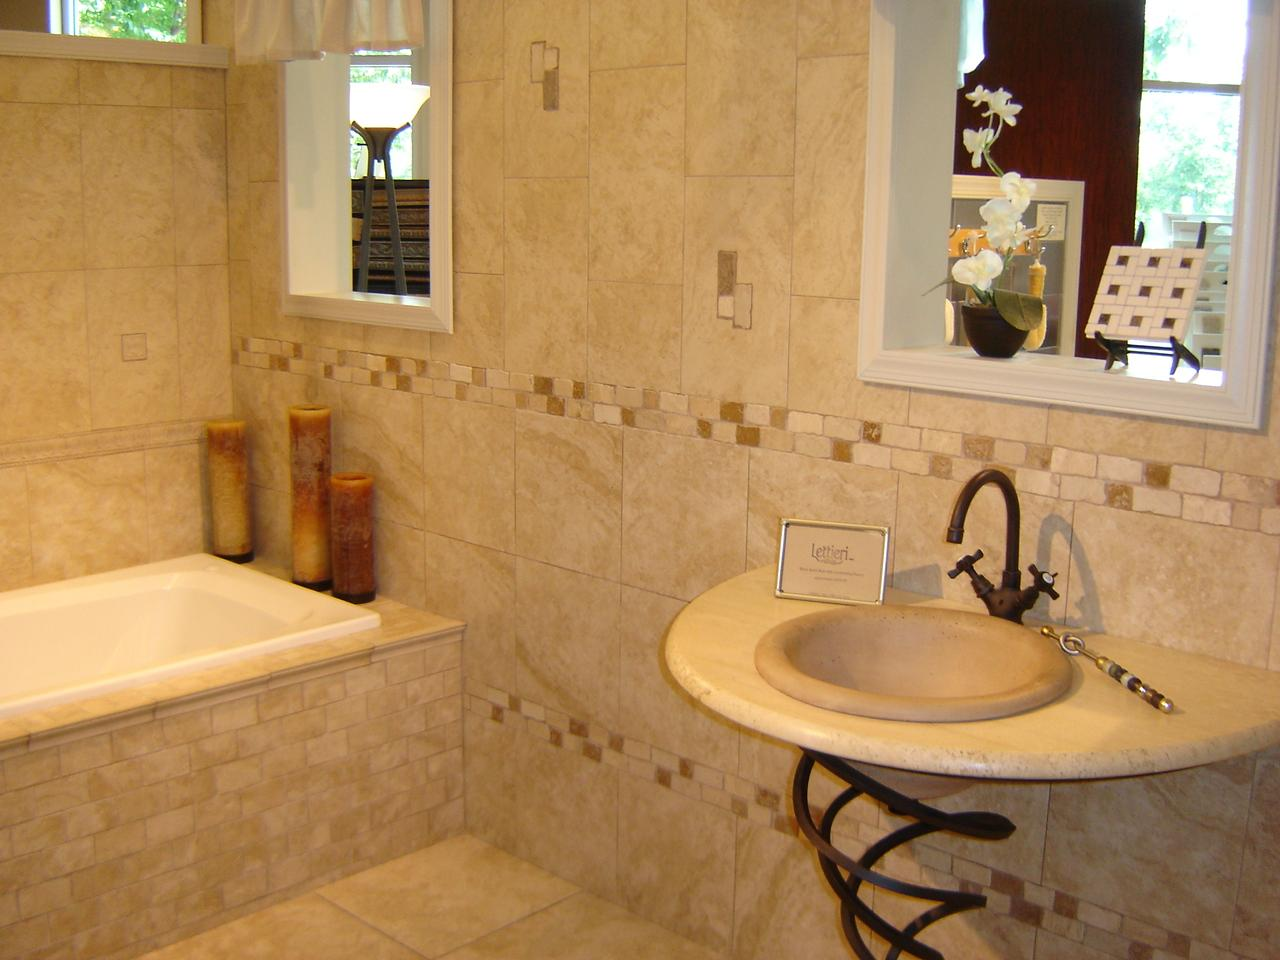 Bathroom tile design ideas Bathroom tub tile design ideas